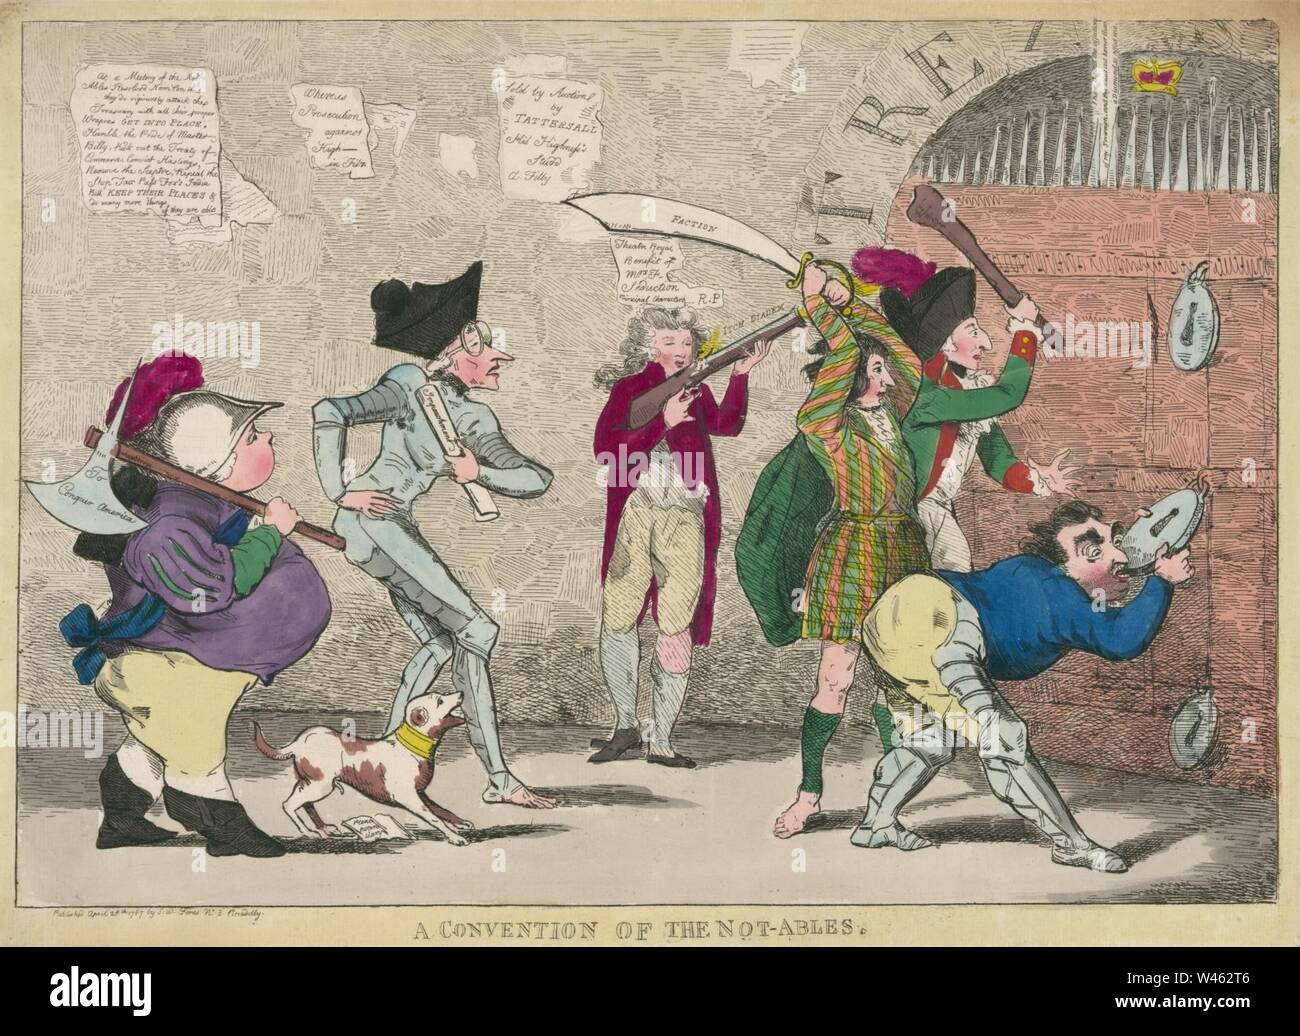 Convention of the Not-ables, 1787. - Stock Image